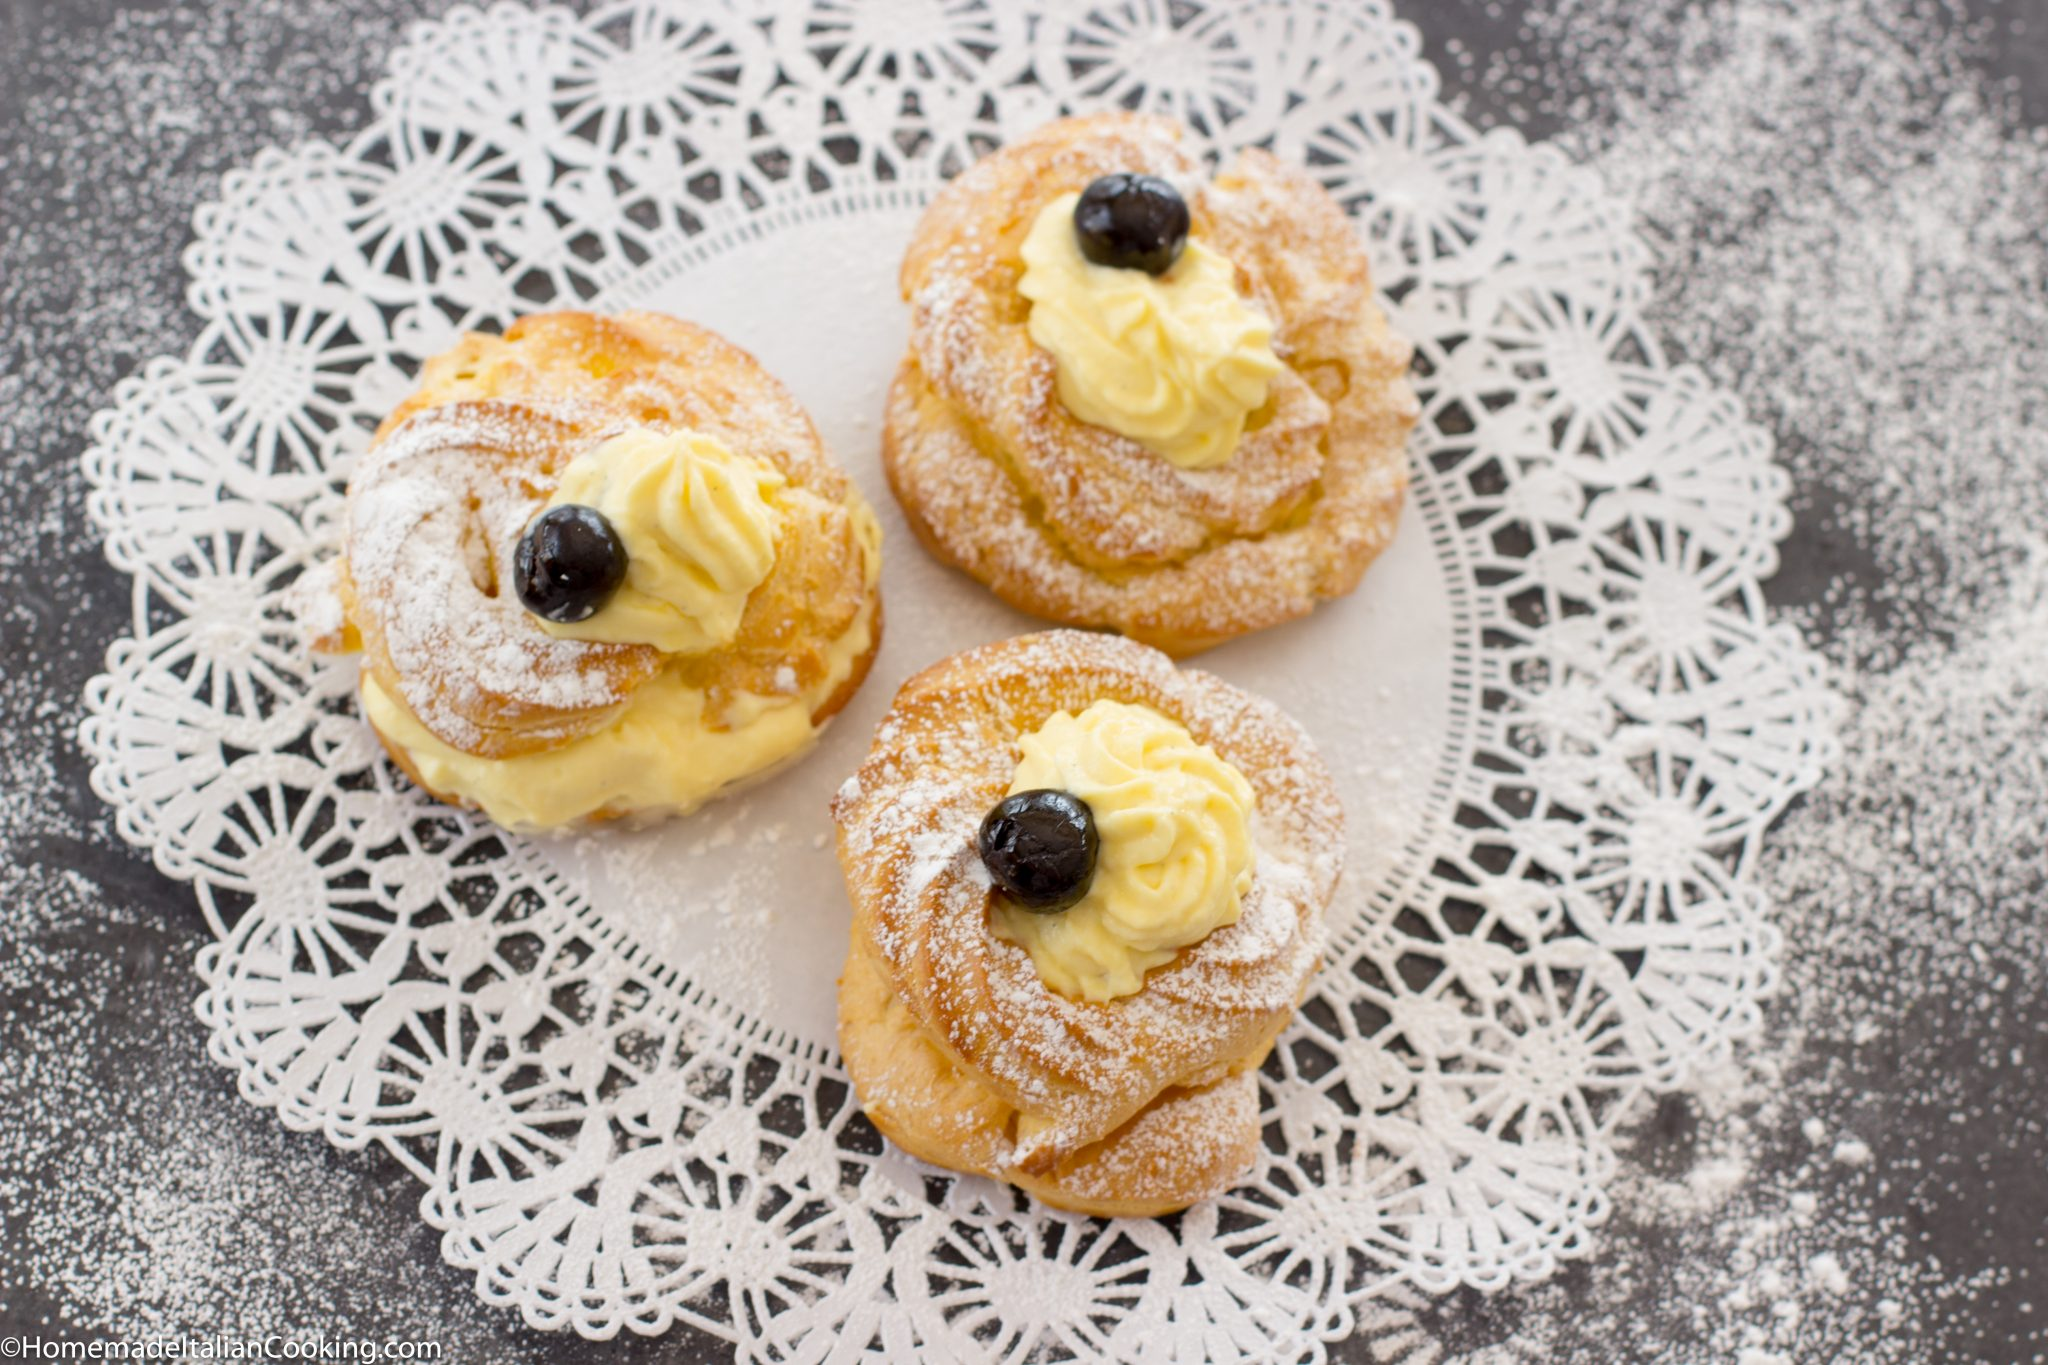 Baked Zeppoles With Homemade Vanilla Custard For St Joseph S Day Homemade Italian Cooking